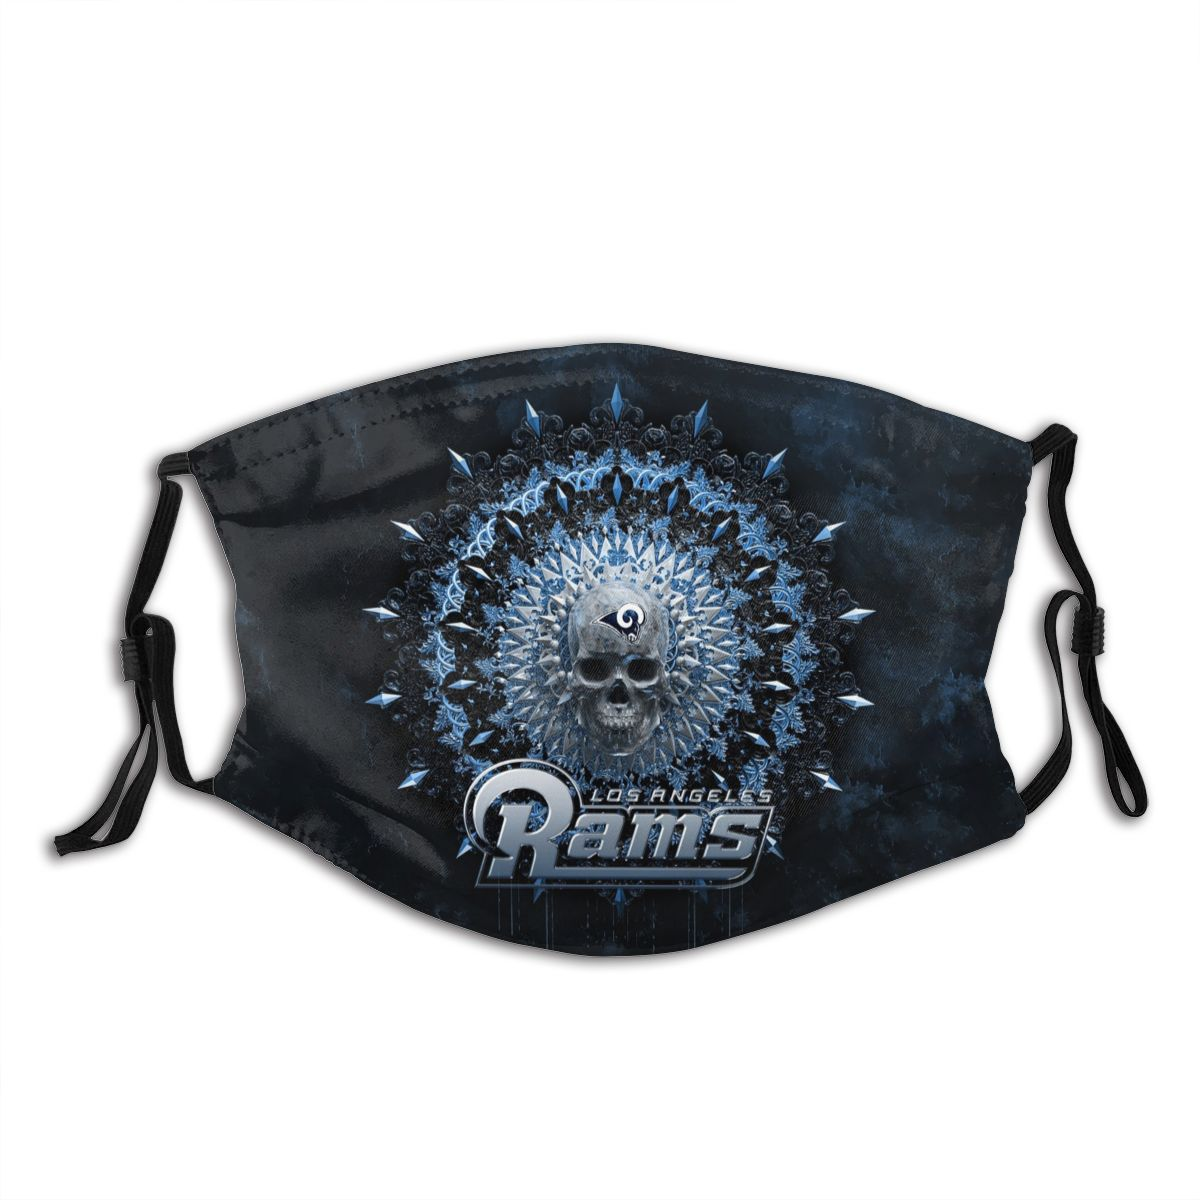 Rams Adult Cloth Face Covering With Filter